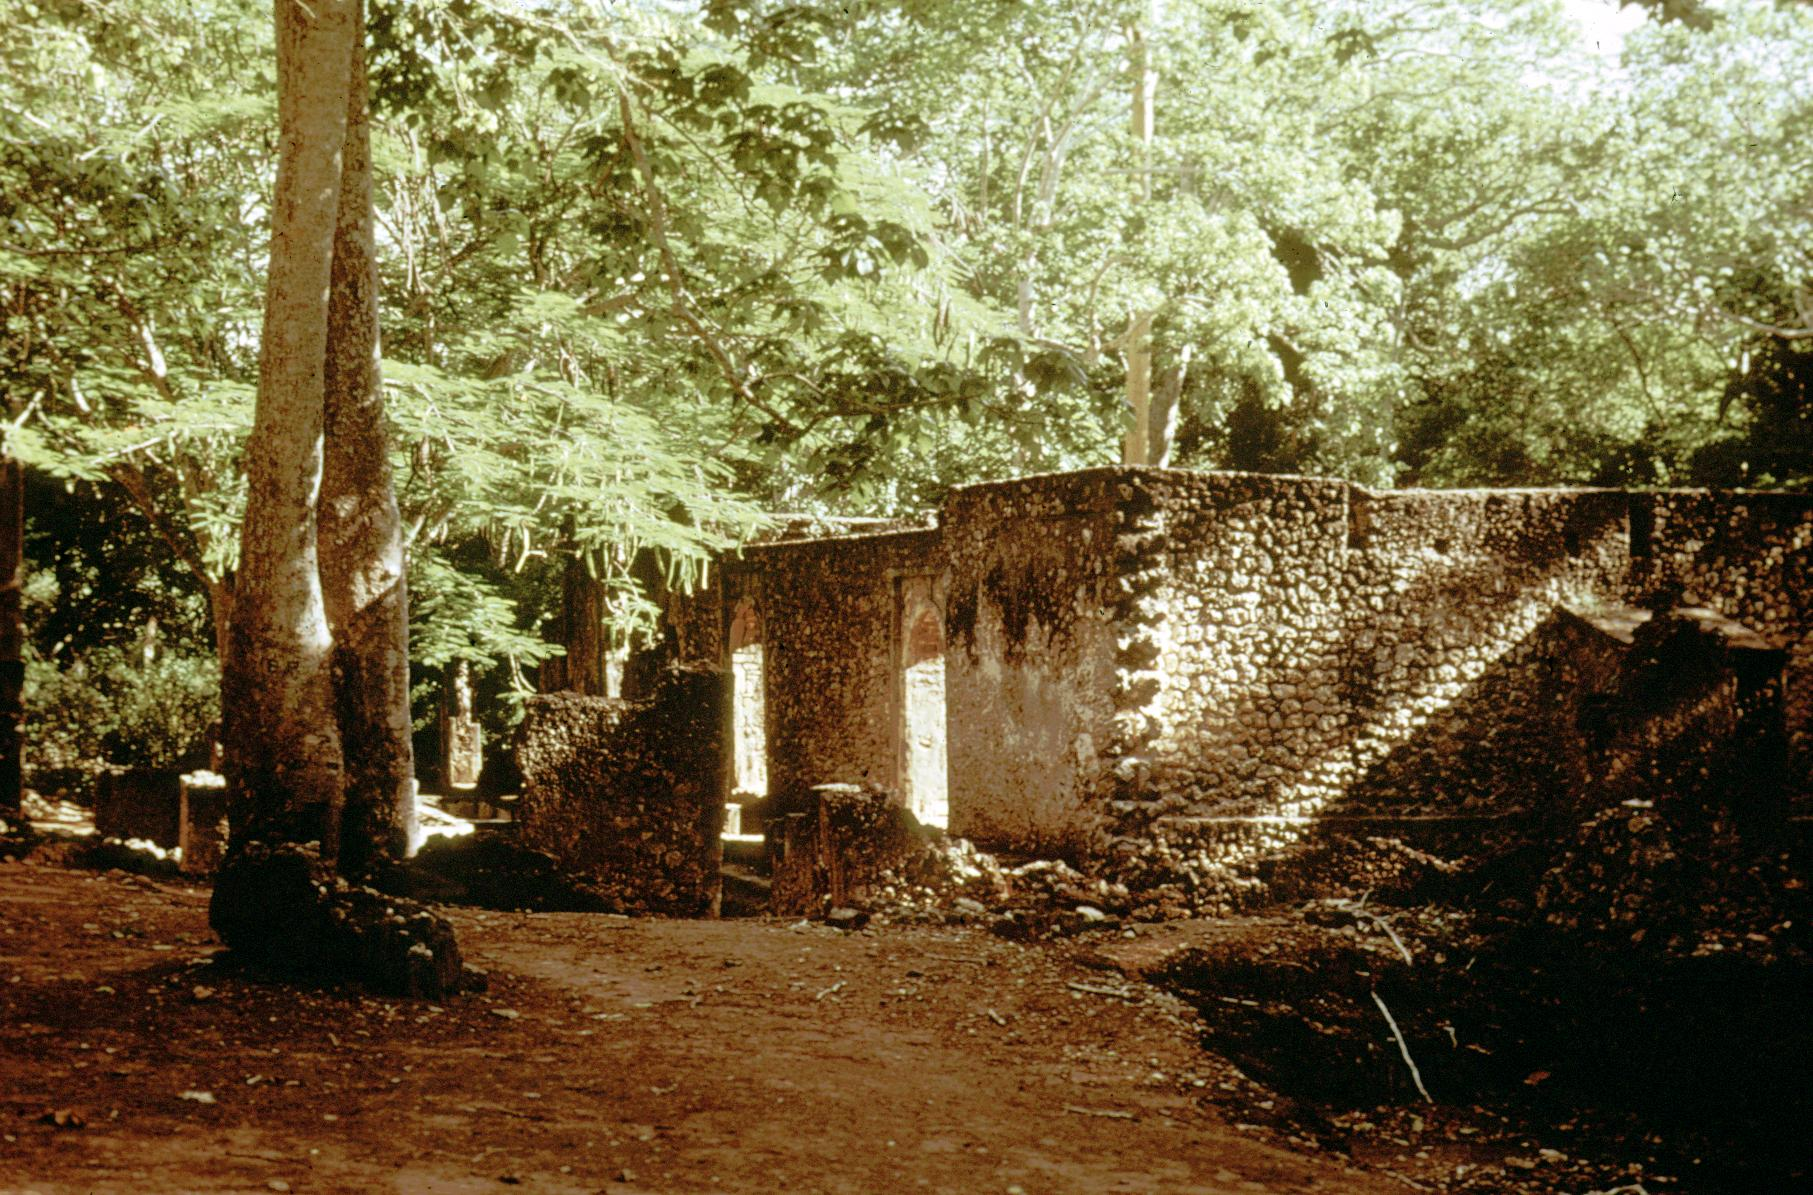 Ruins of the Palace of the Ruler of Gedi